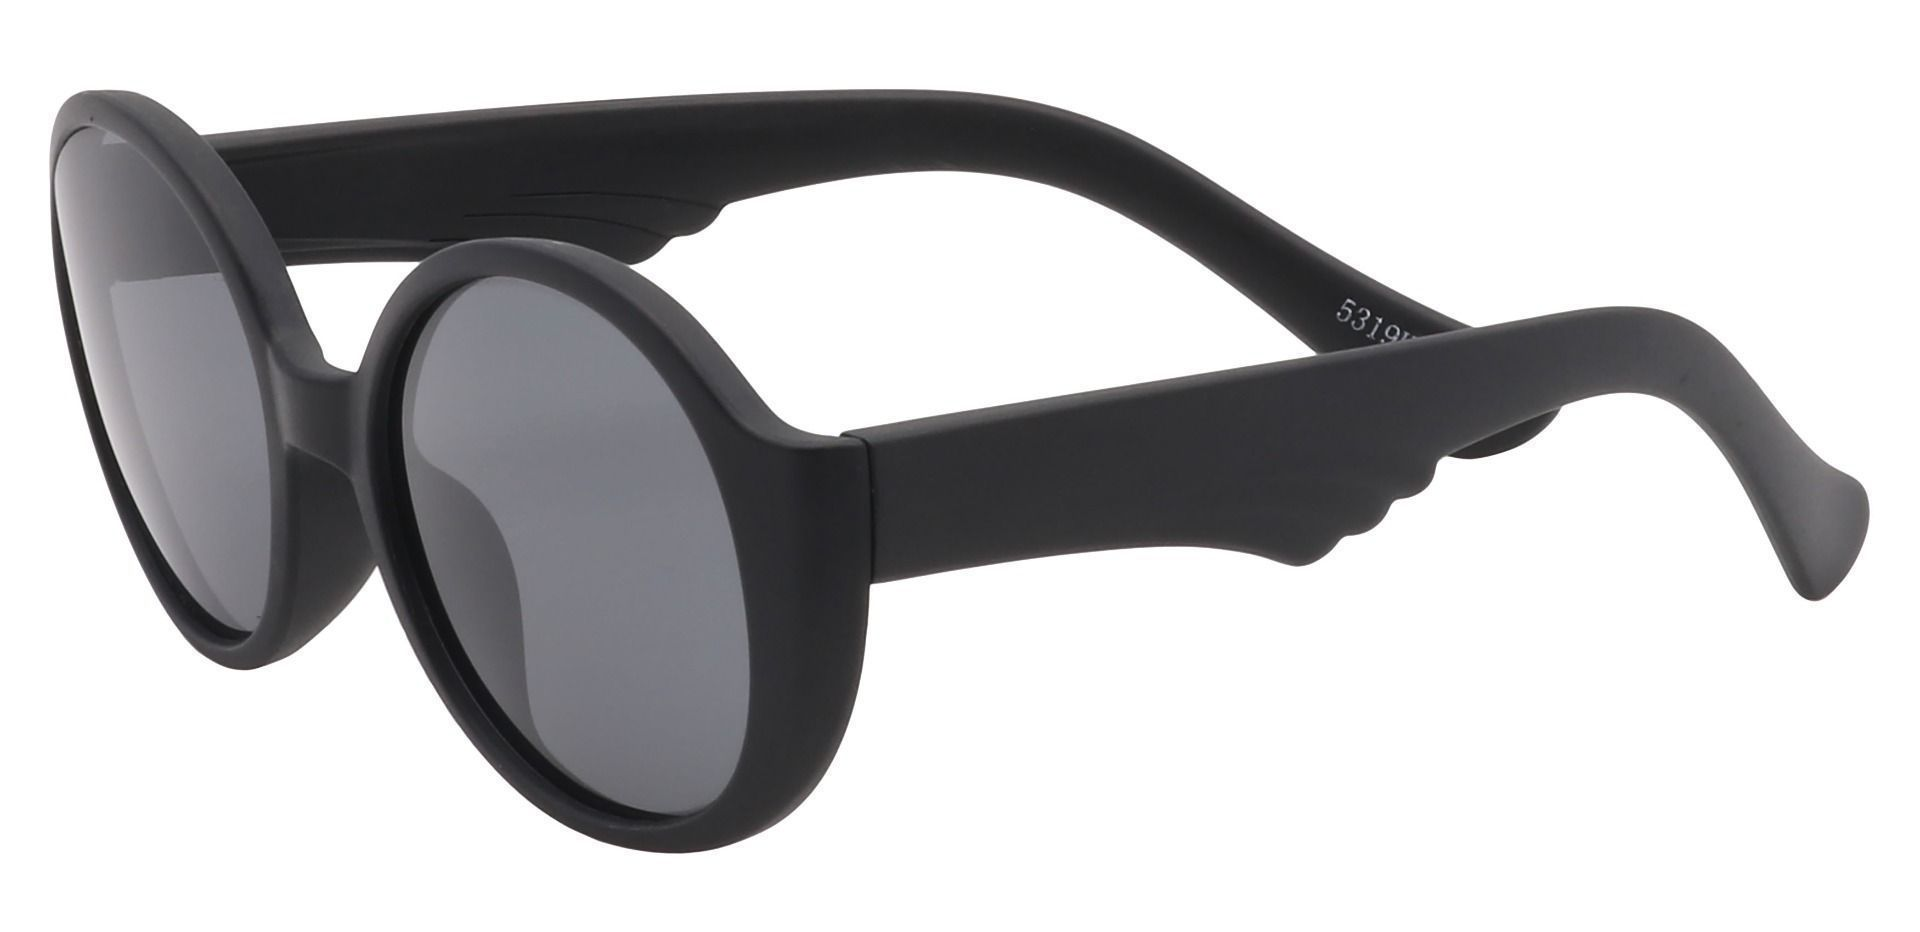 Raven Round Single Vision Sunglasses - Black Frame With Gray Lenses